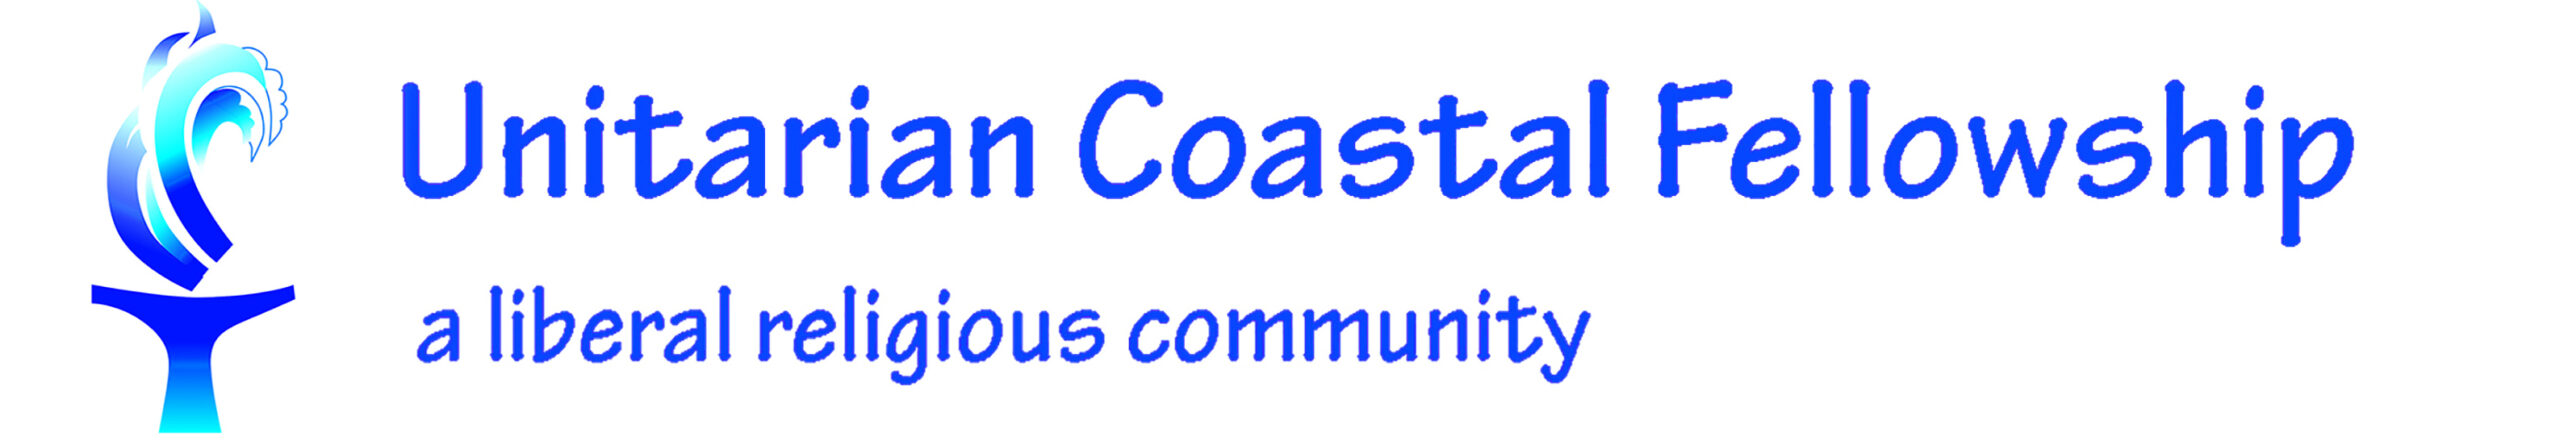 Unitarian Coastal Fellowship